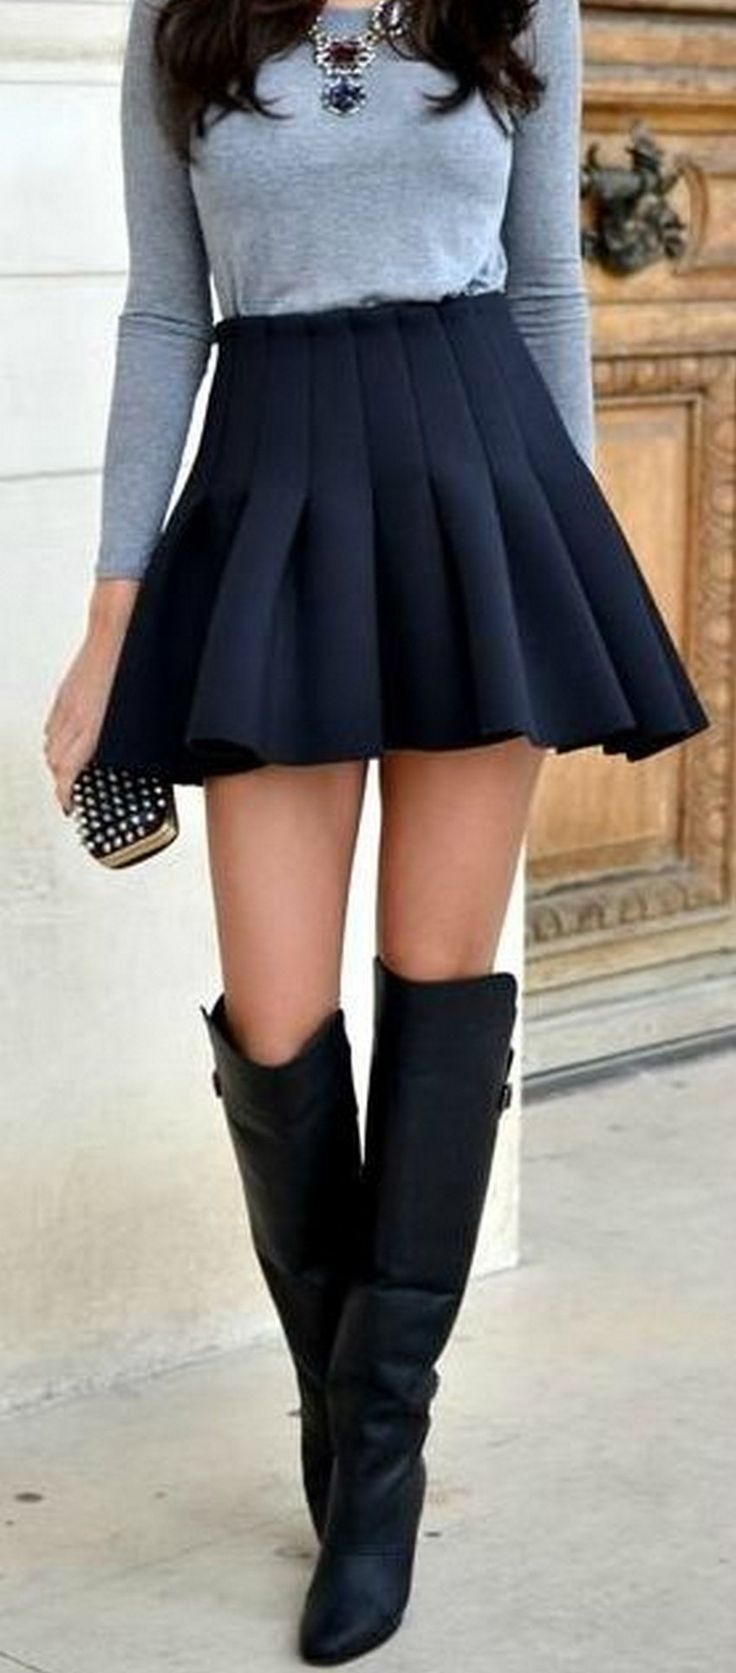 8. Pleated Skirt | How to Wear Over the Knee Boots